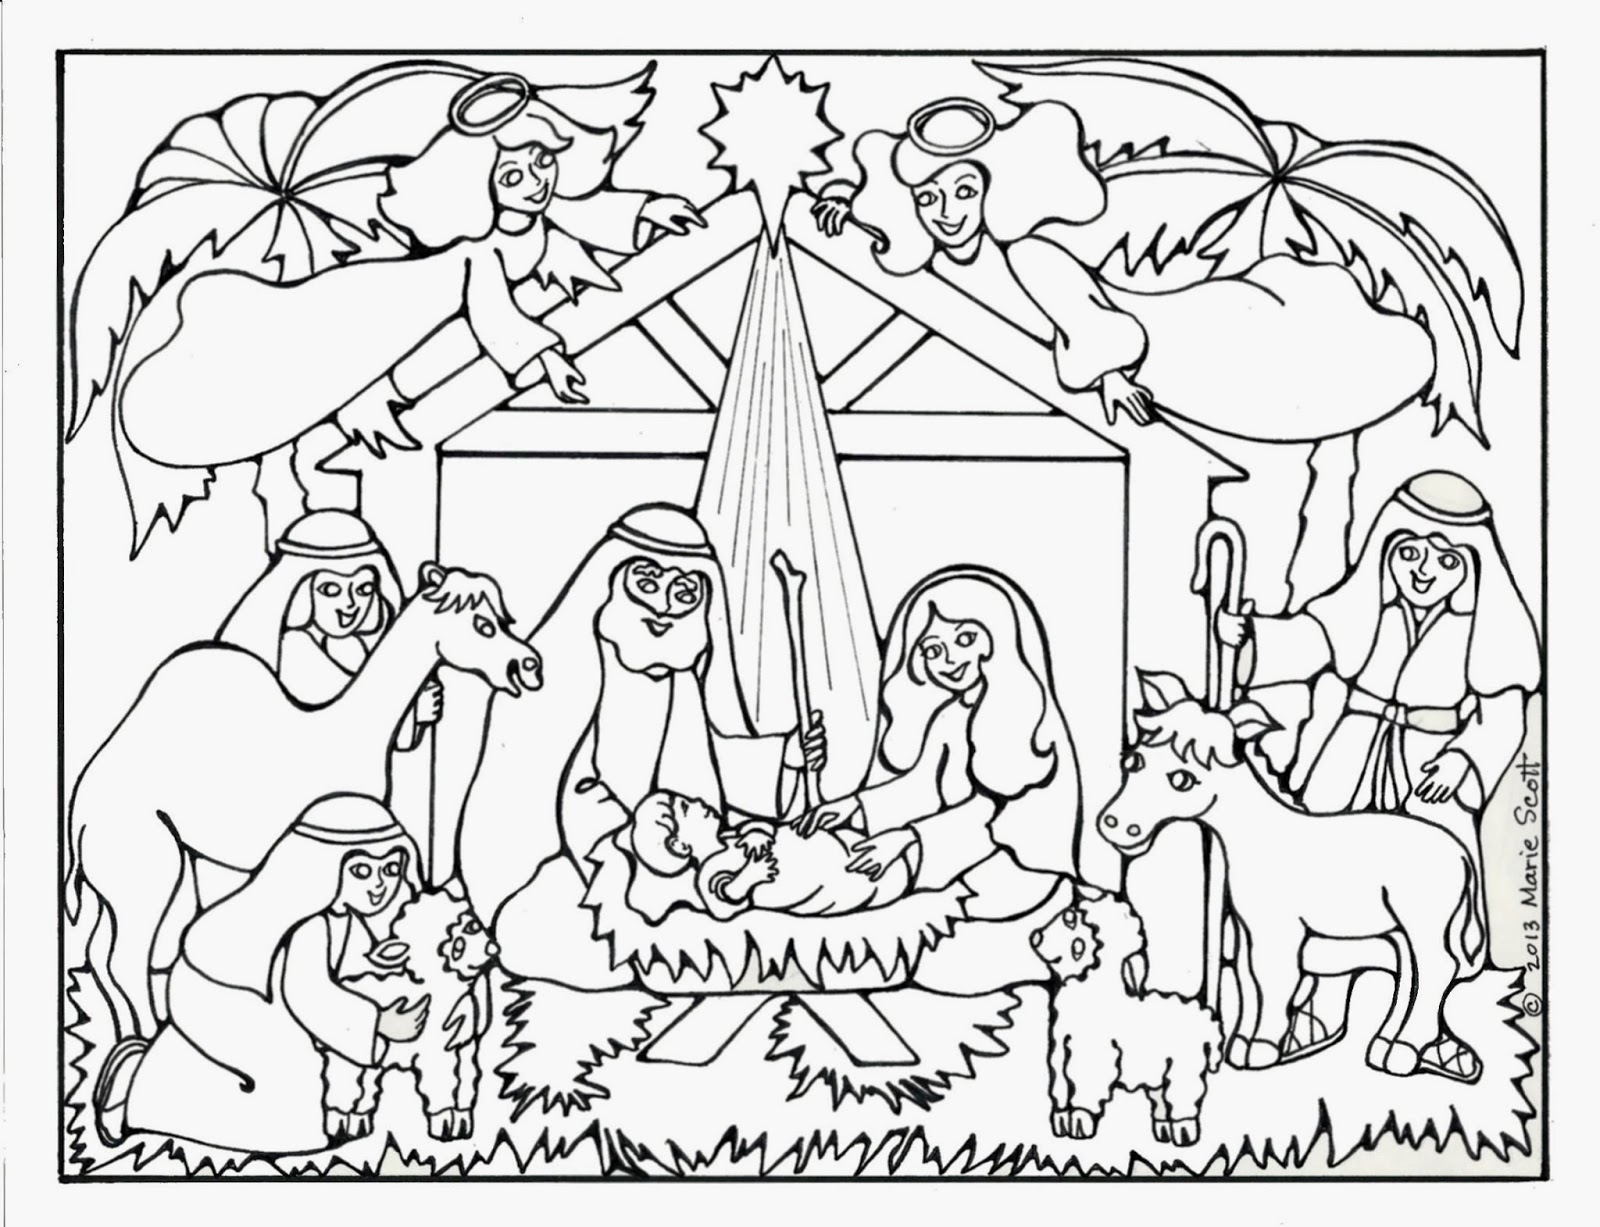 coloring pages of nativity scene - photo#19